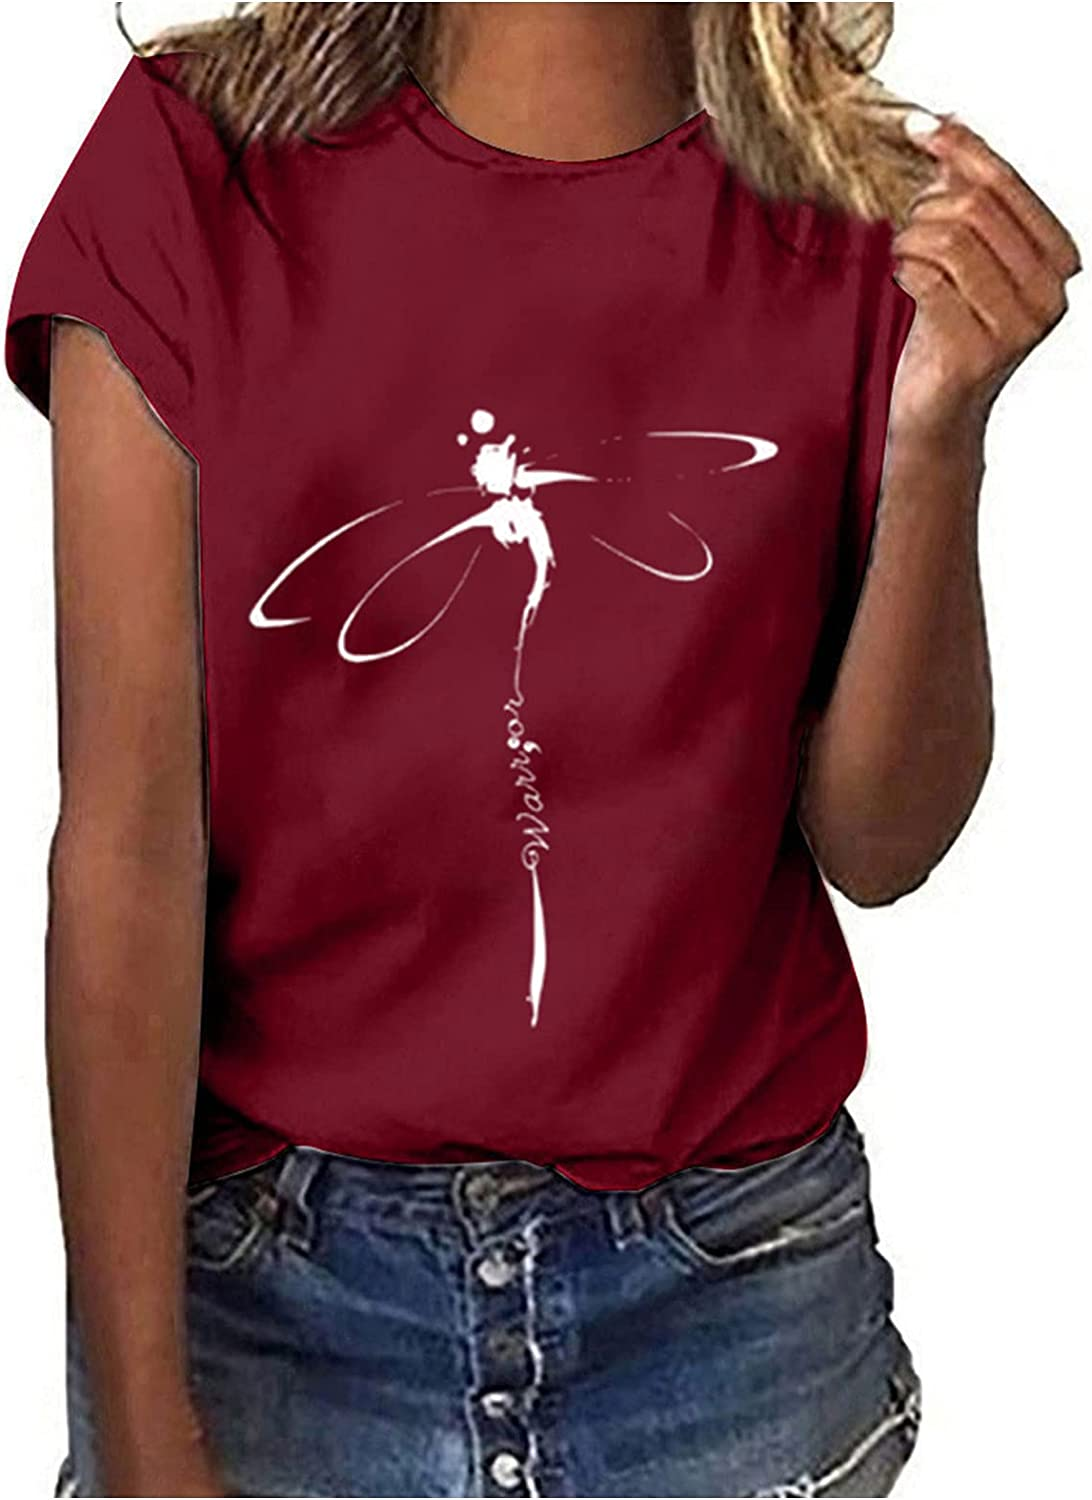 Bidobibo Graphic Tees Women Printed Crew Neck Large Max 53% OFF special price Dragonfly Tshirts